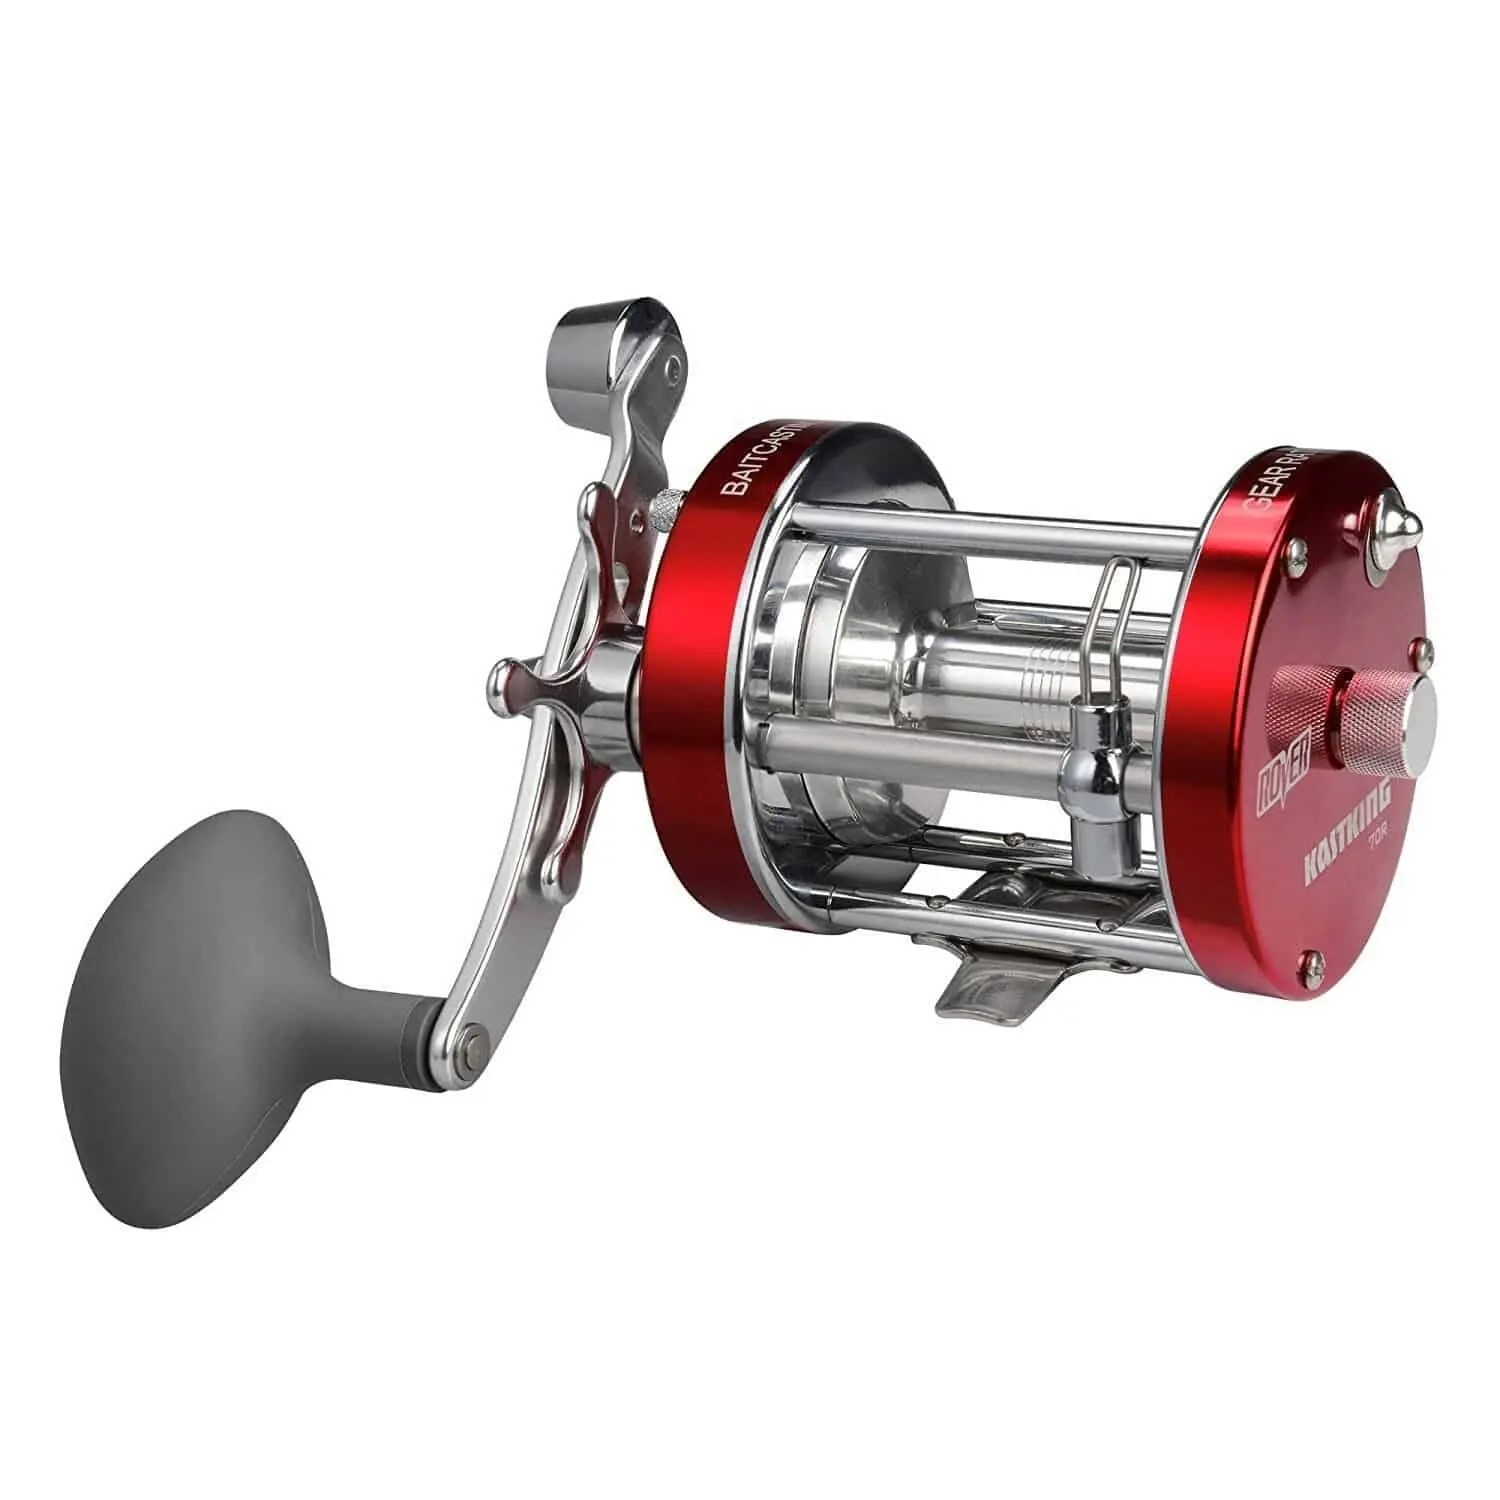 KastKing Rover Round Baitcasting Reel - No.1 Highest Rated Conventional Reel